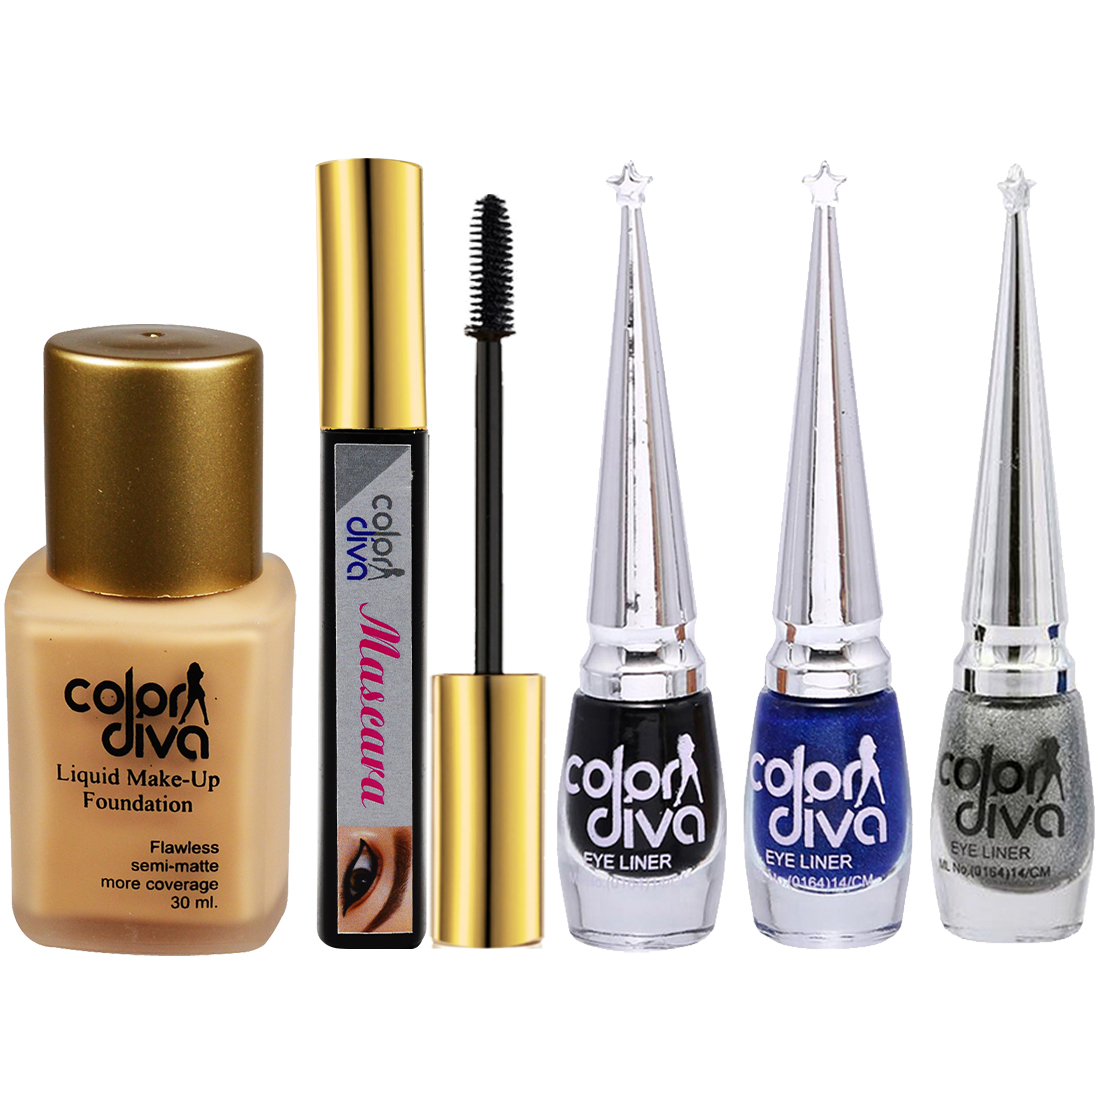 Adbeni Combo Skin Diva GoldDiamond Facial Kit With Color Diva Eyeliner- MascarFoundation- Pack of 7- (GC1441)